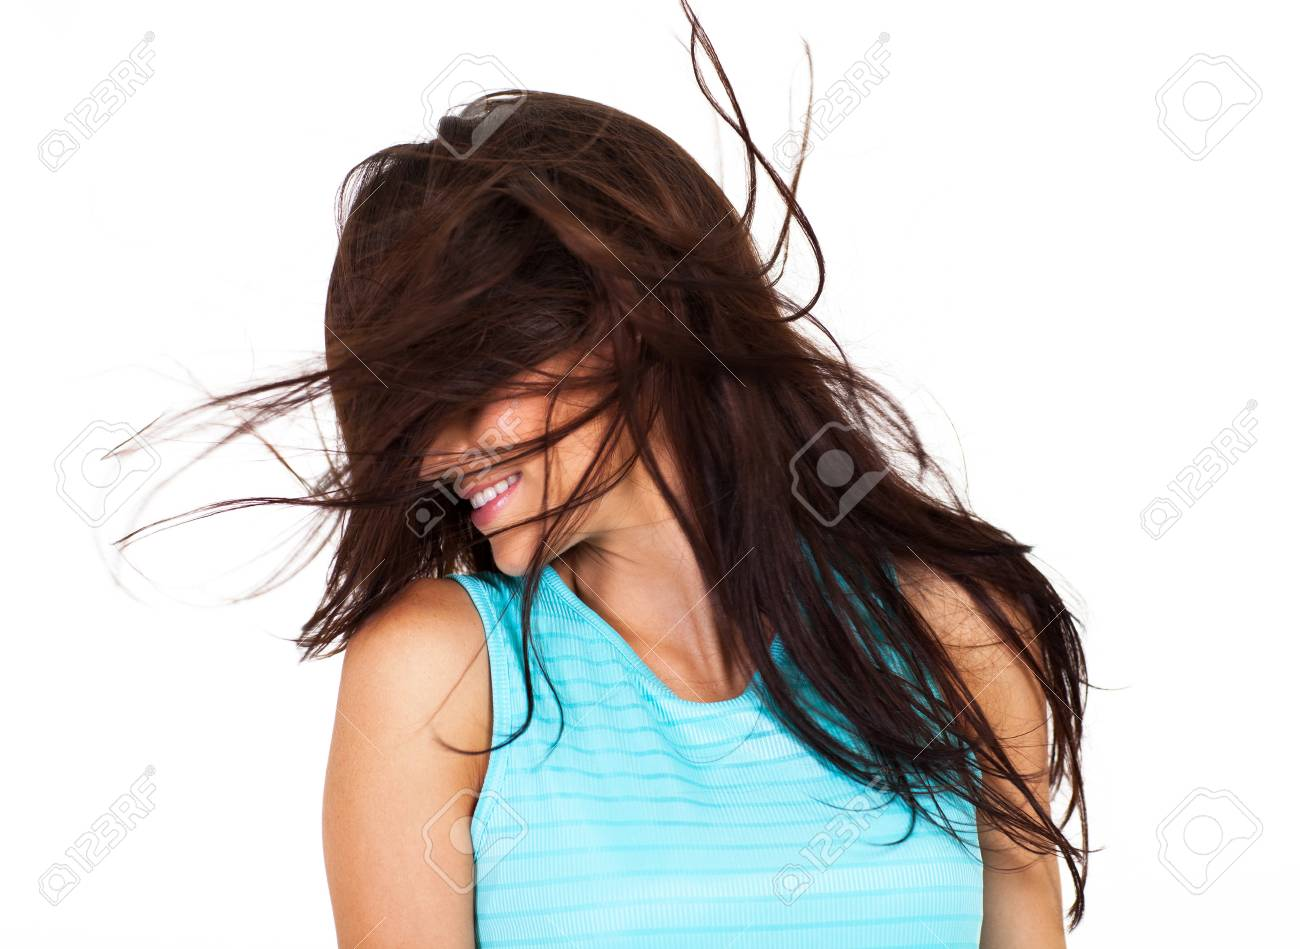 young woman having fun with messy hair isolated on white Stock Photo - 17232789